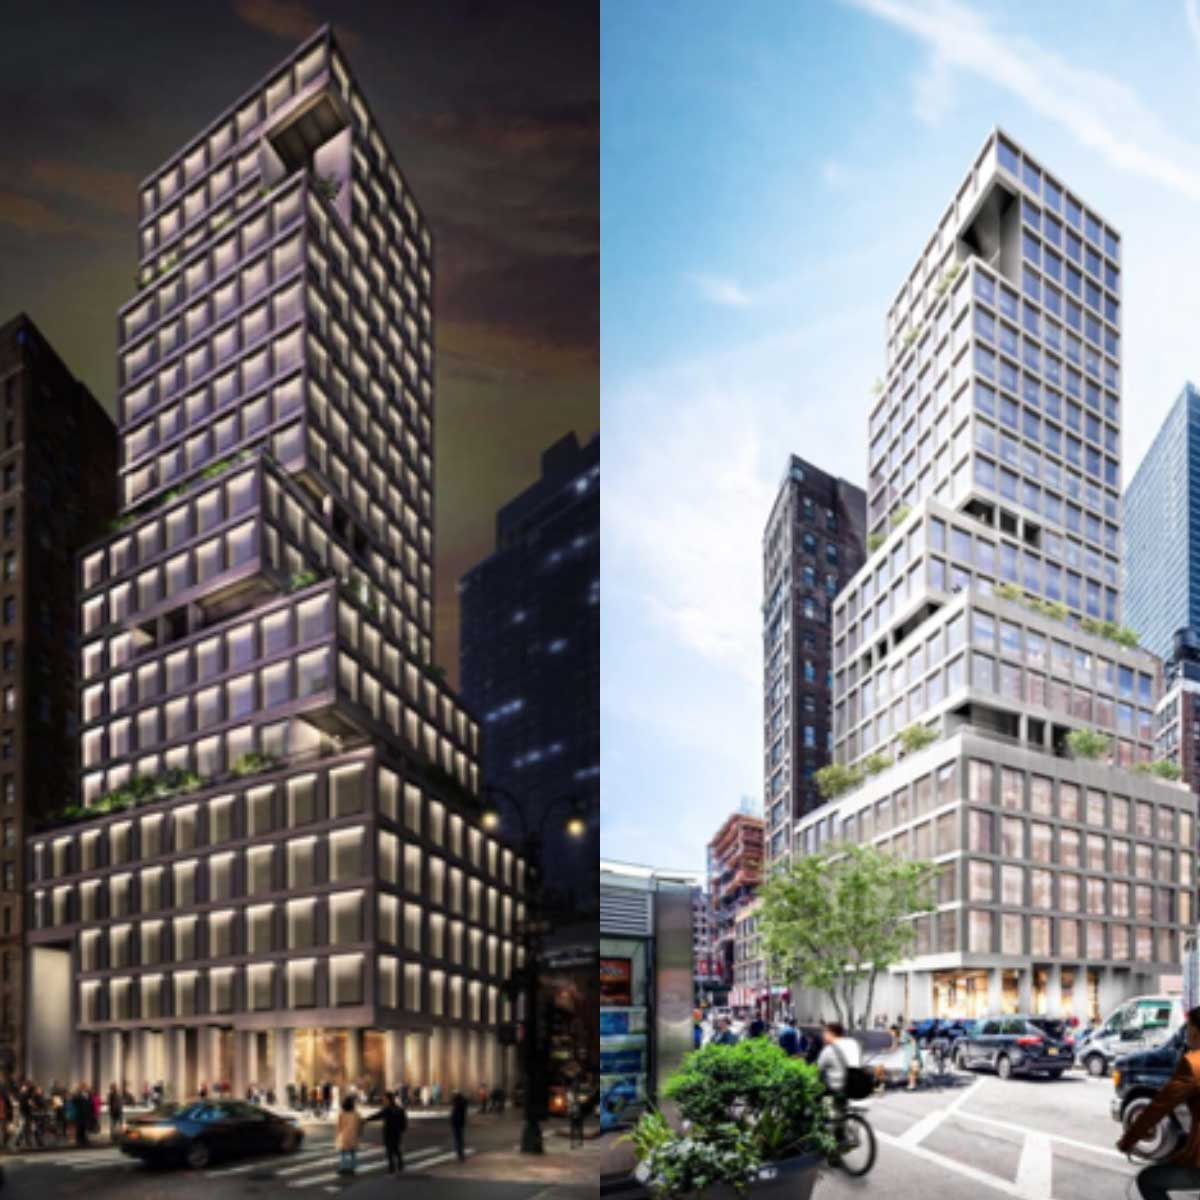 Construction to Begin on Striking Office Tower by Skidmore, Owings & Merrill